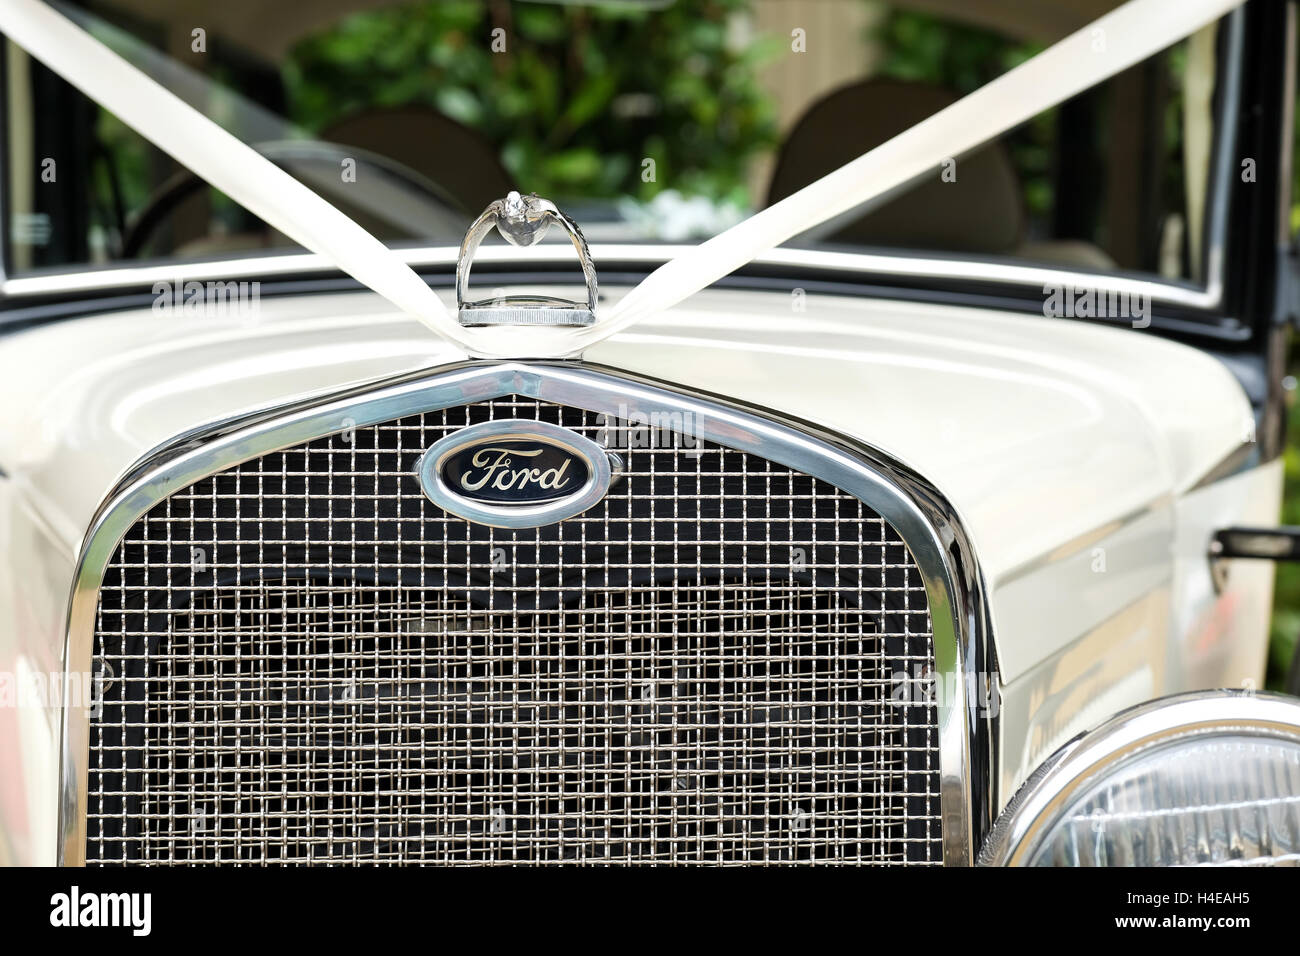 The front grill of a classic old ford car clearly showing the ford motor vehicle badge - Stock Image